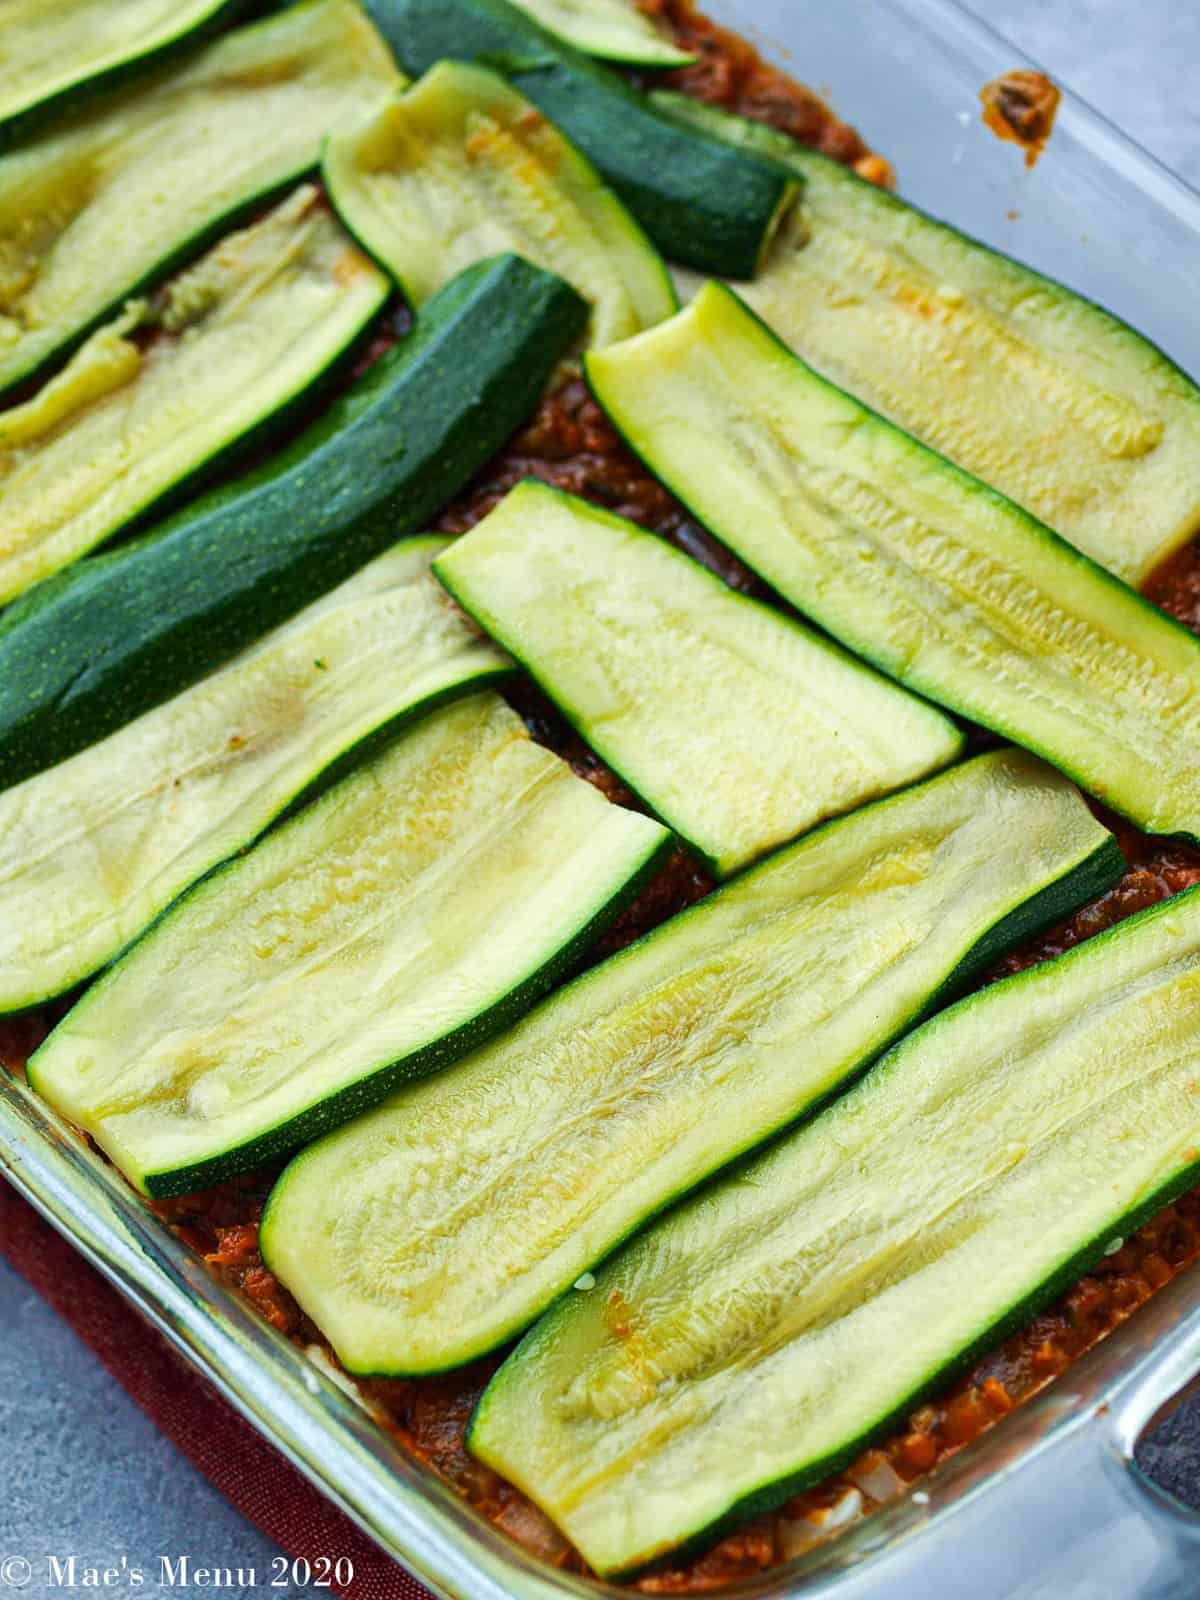 Slices of zucchini on top of the meat pasta sauce as we build the lasagna